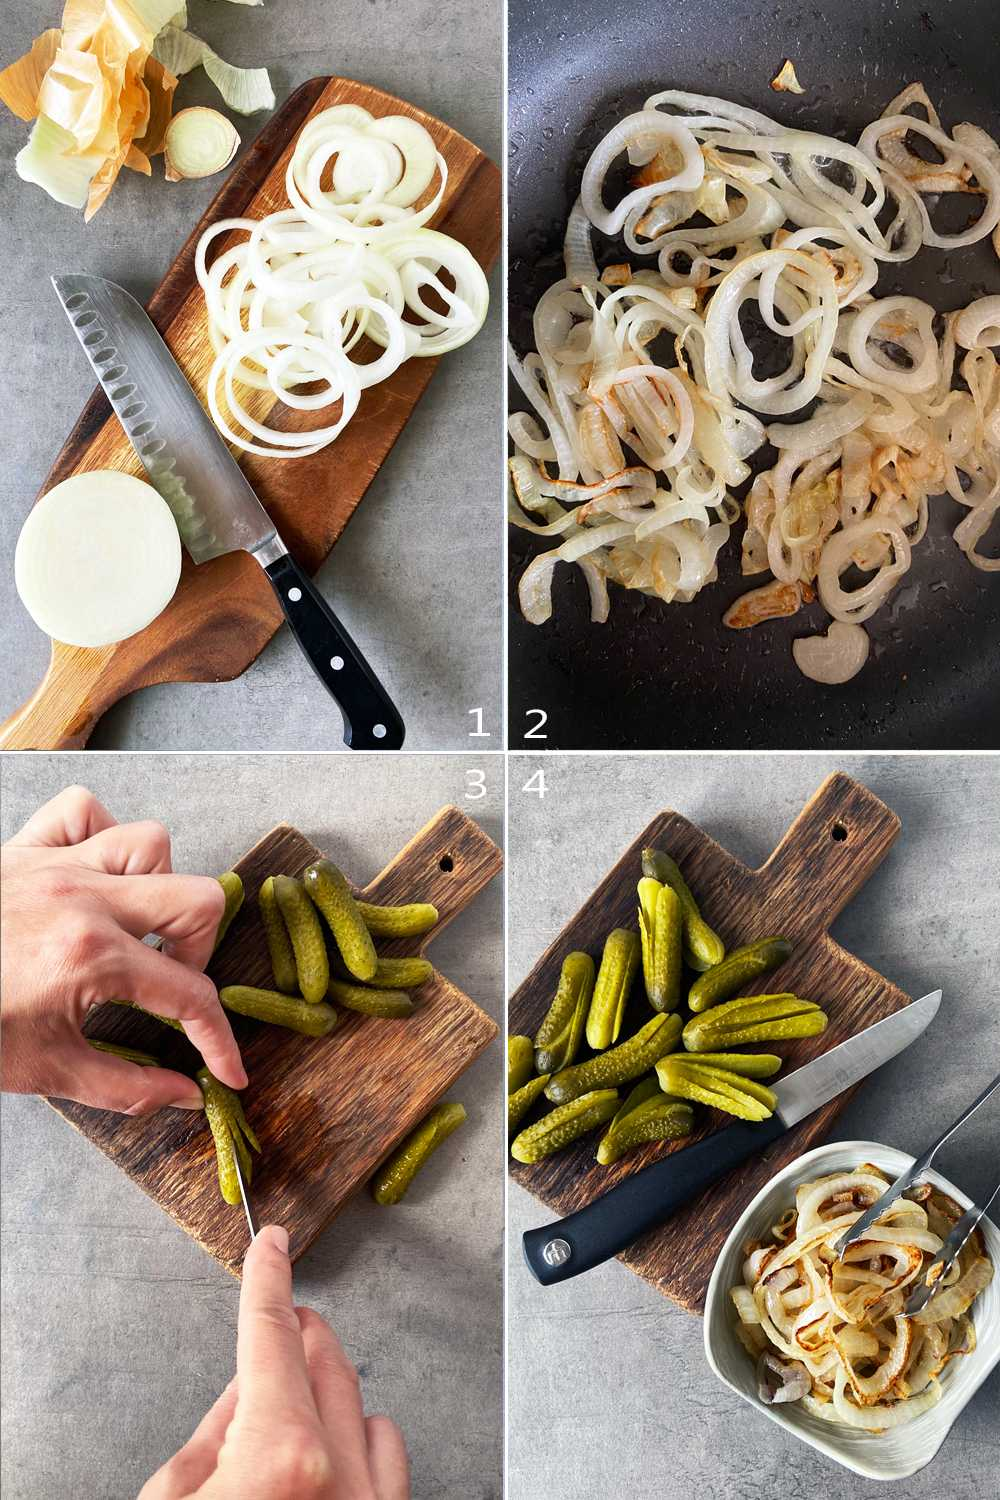 How to make fried onions and prepare pickles for traditional Bierfleisch